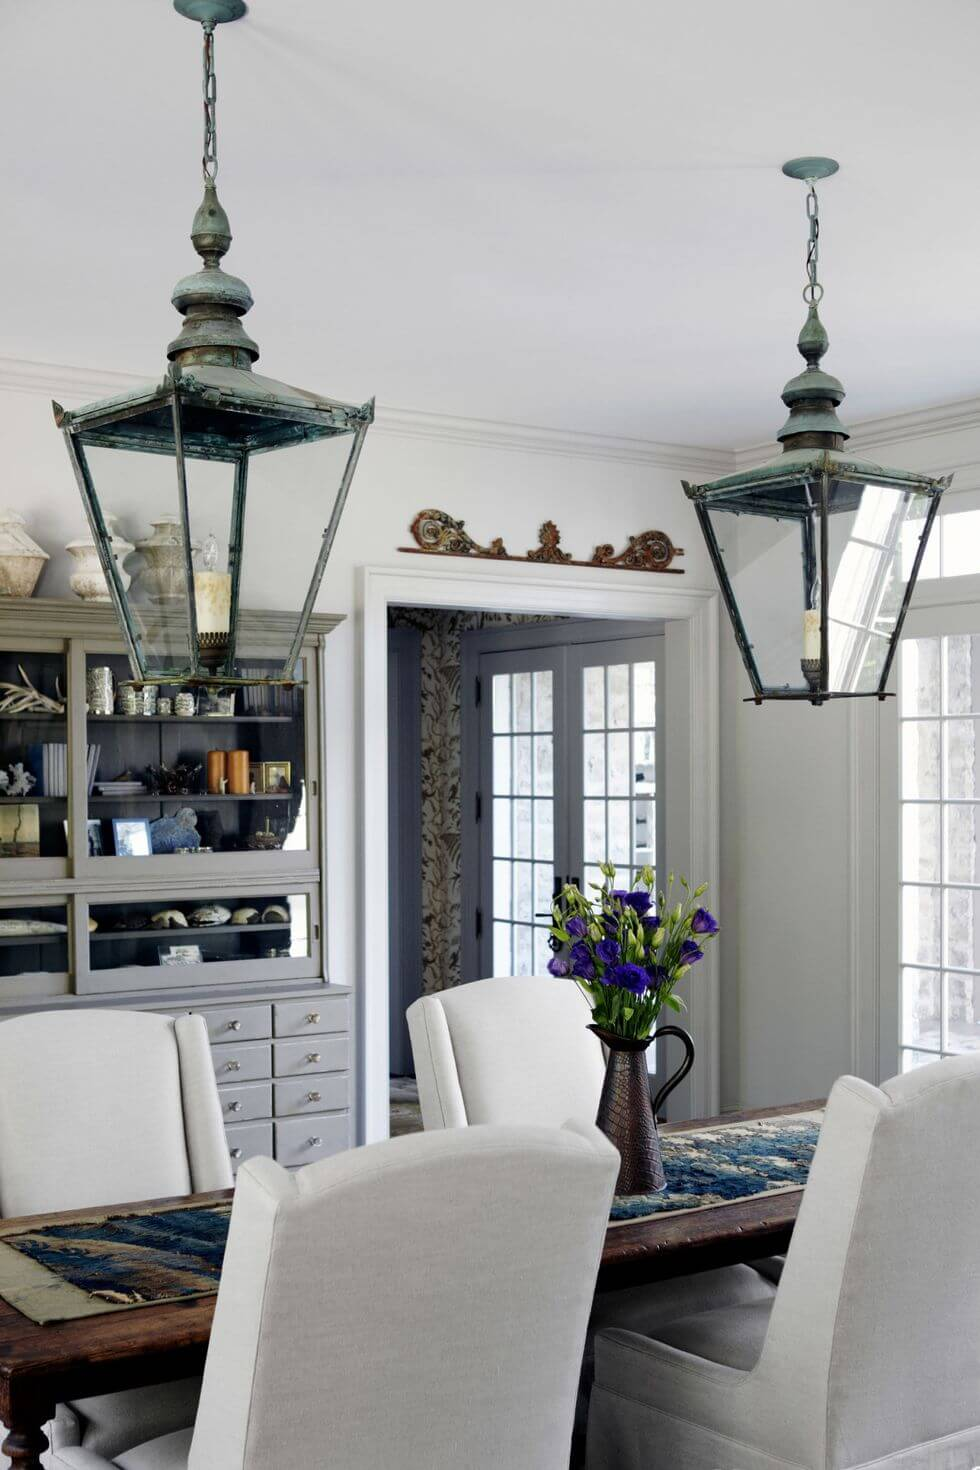 THE LANTERNS DINING ROOM LIGHTING IDEAS FOR SMALL SPACE